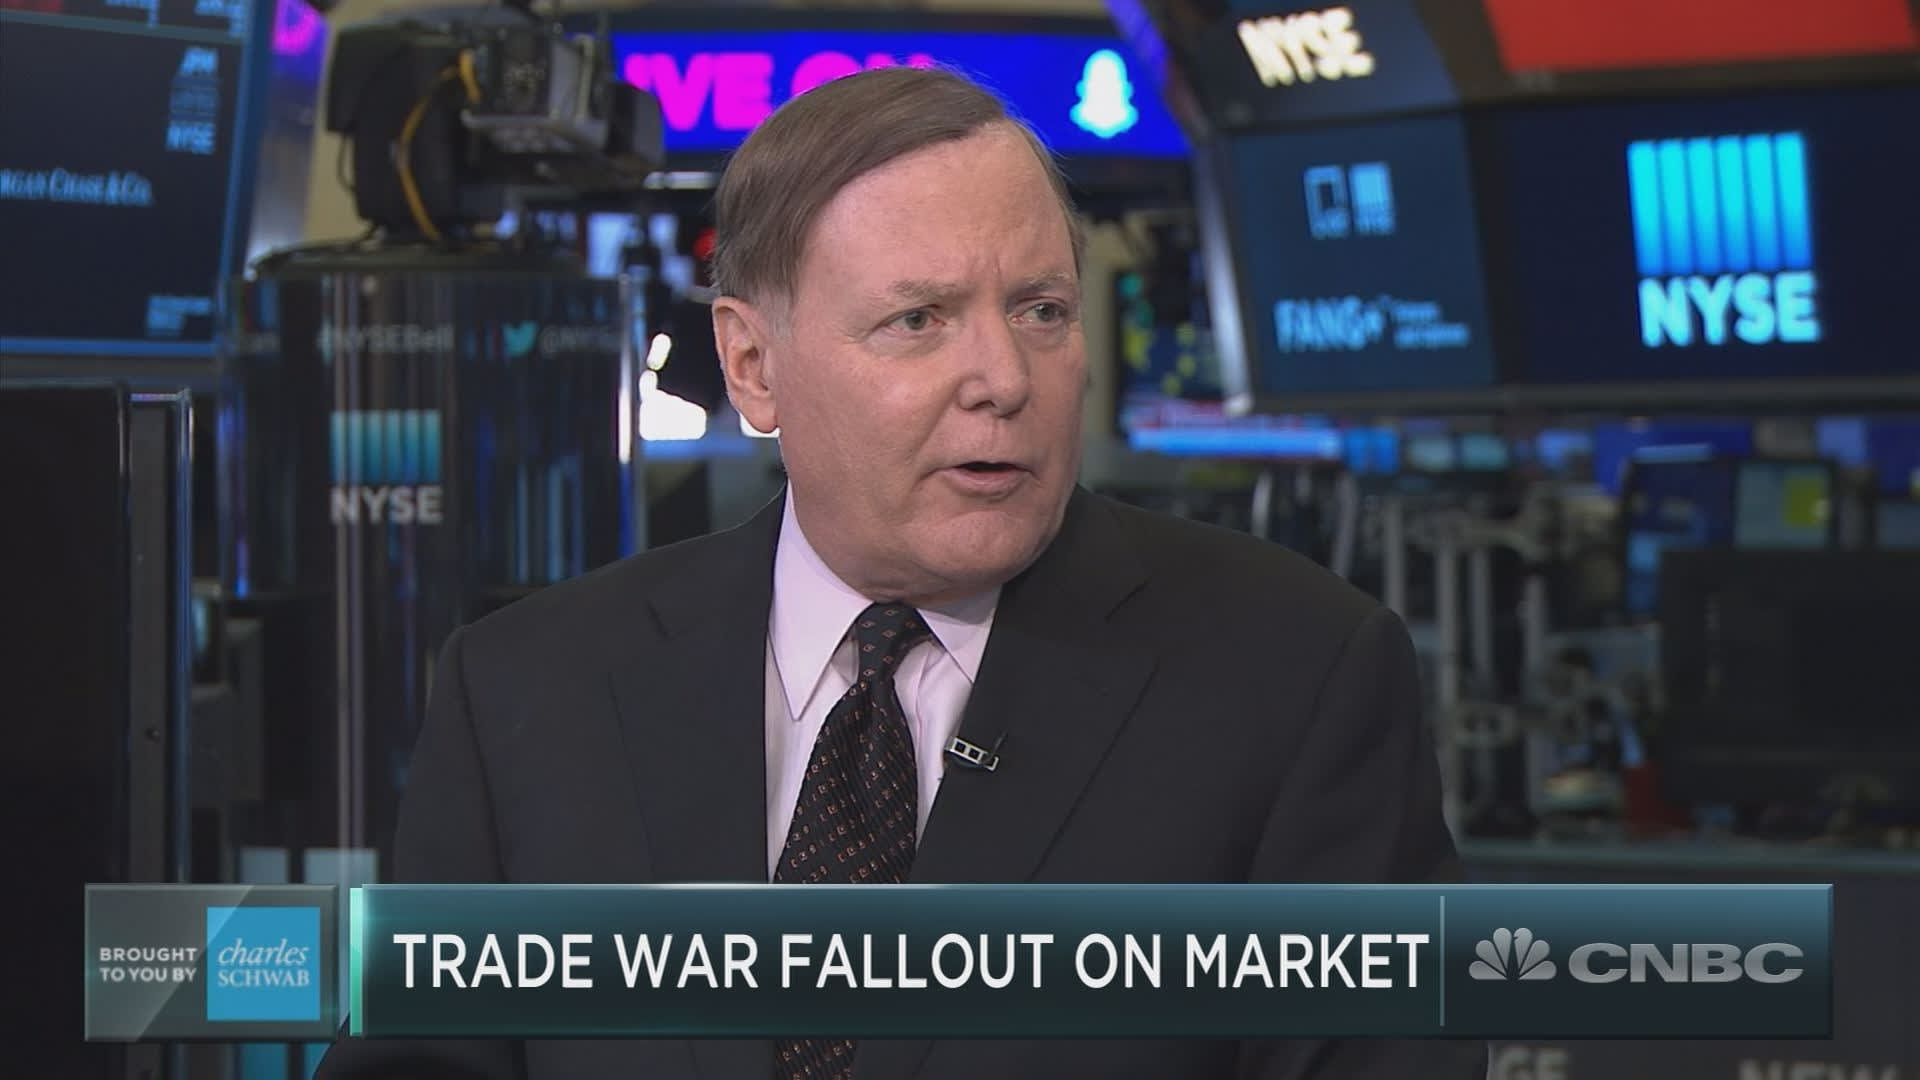 Stocks will rally to new highs no matter what happens with trade, market bull Jeff Saut predicts